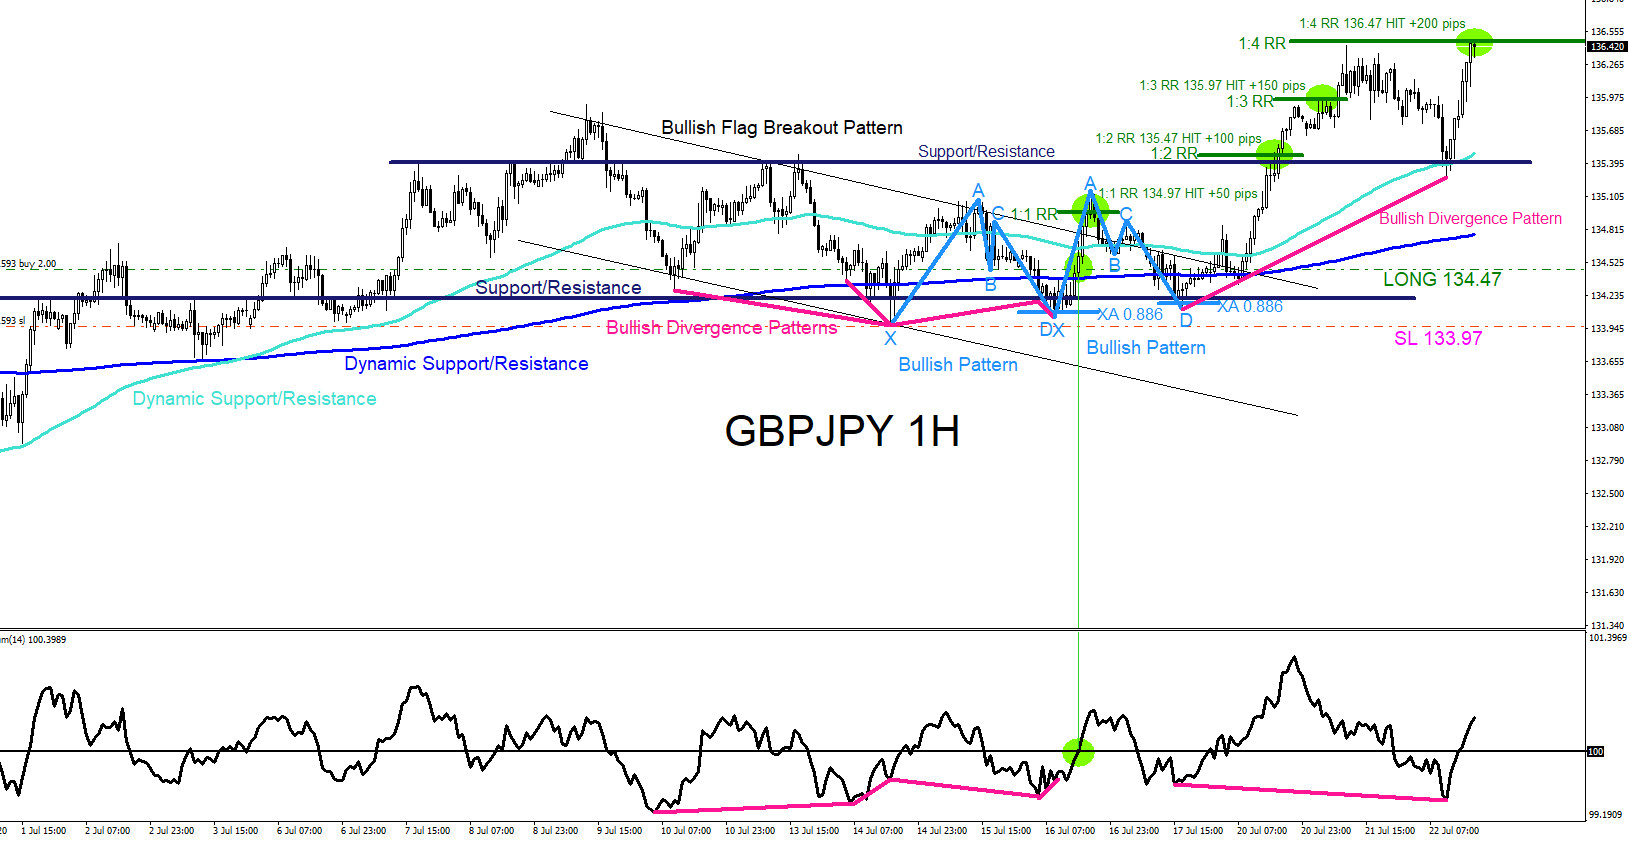 GBPJPY : Market Patterns Signalling the Move Higher